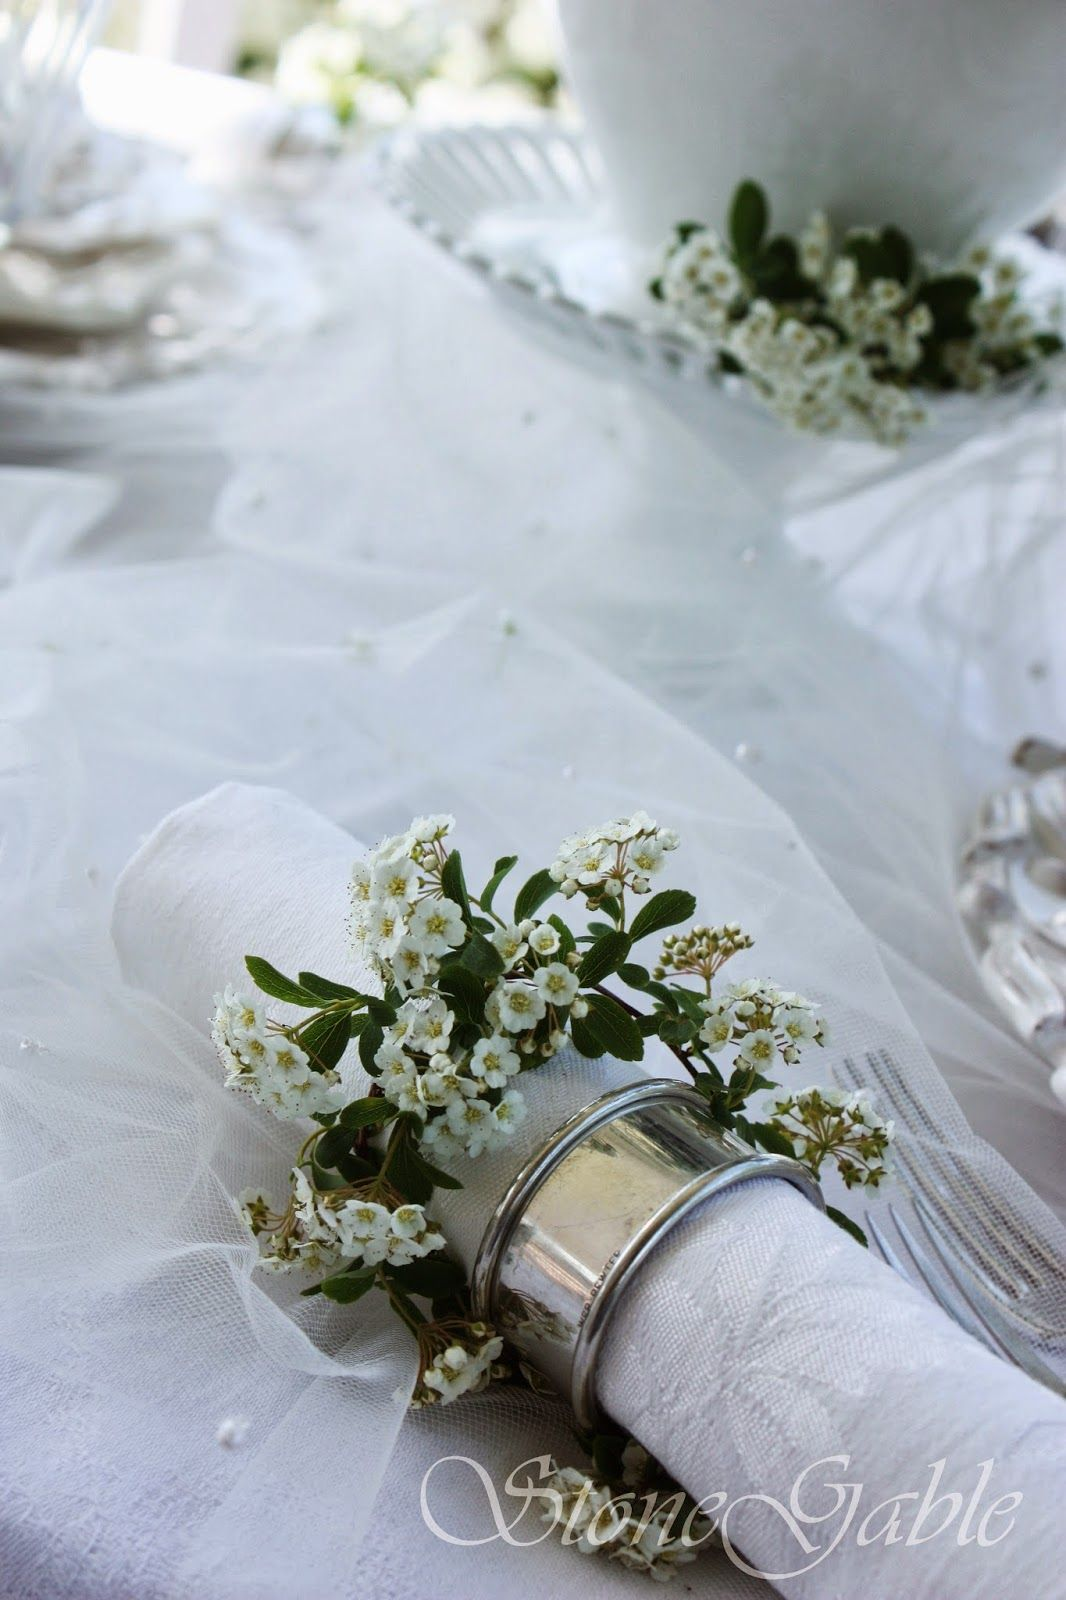 Attractive 5 INTERESTING WAYS TO USE NAPKINS AND NAPKIN RINGS... A TABLESCAPE SERIES,  PART III